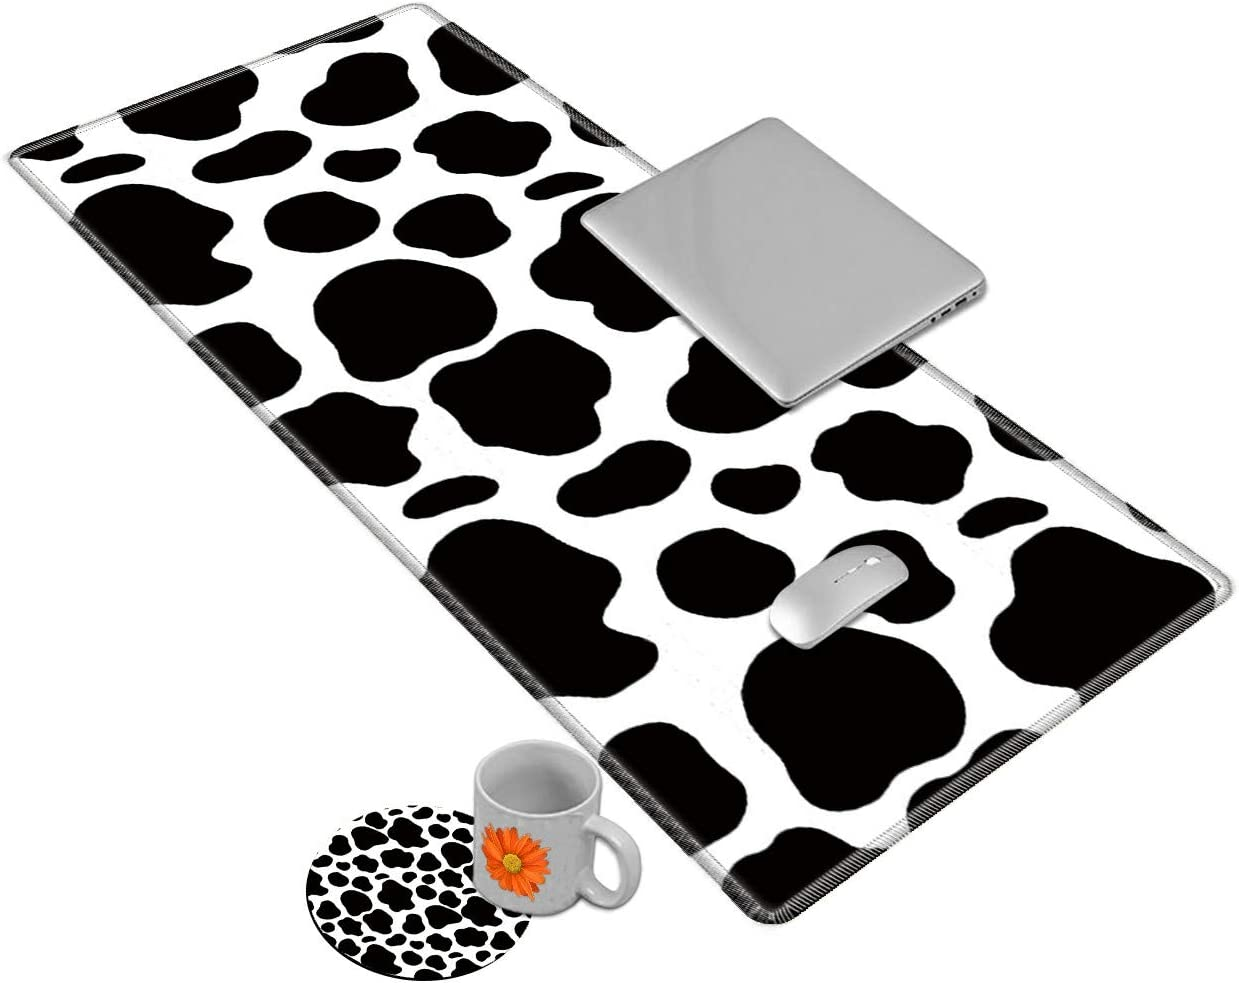 Desk Mat Gaming Mouse pad for Laptop, Cute Cow Customized Design Printed Desk pad, Home Office Accessories, with Sunflower Coasters and Cute Stickers